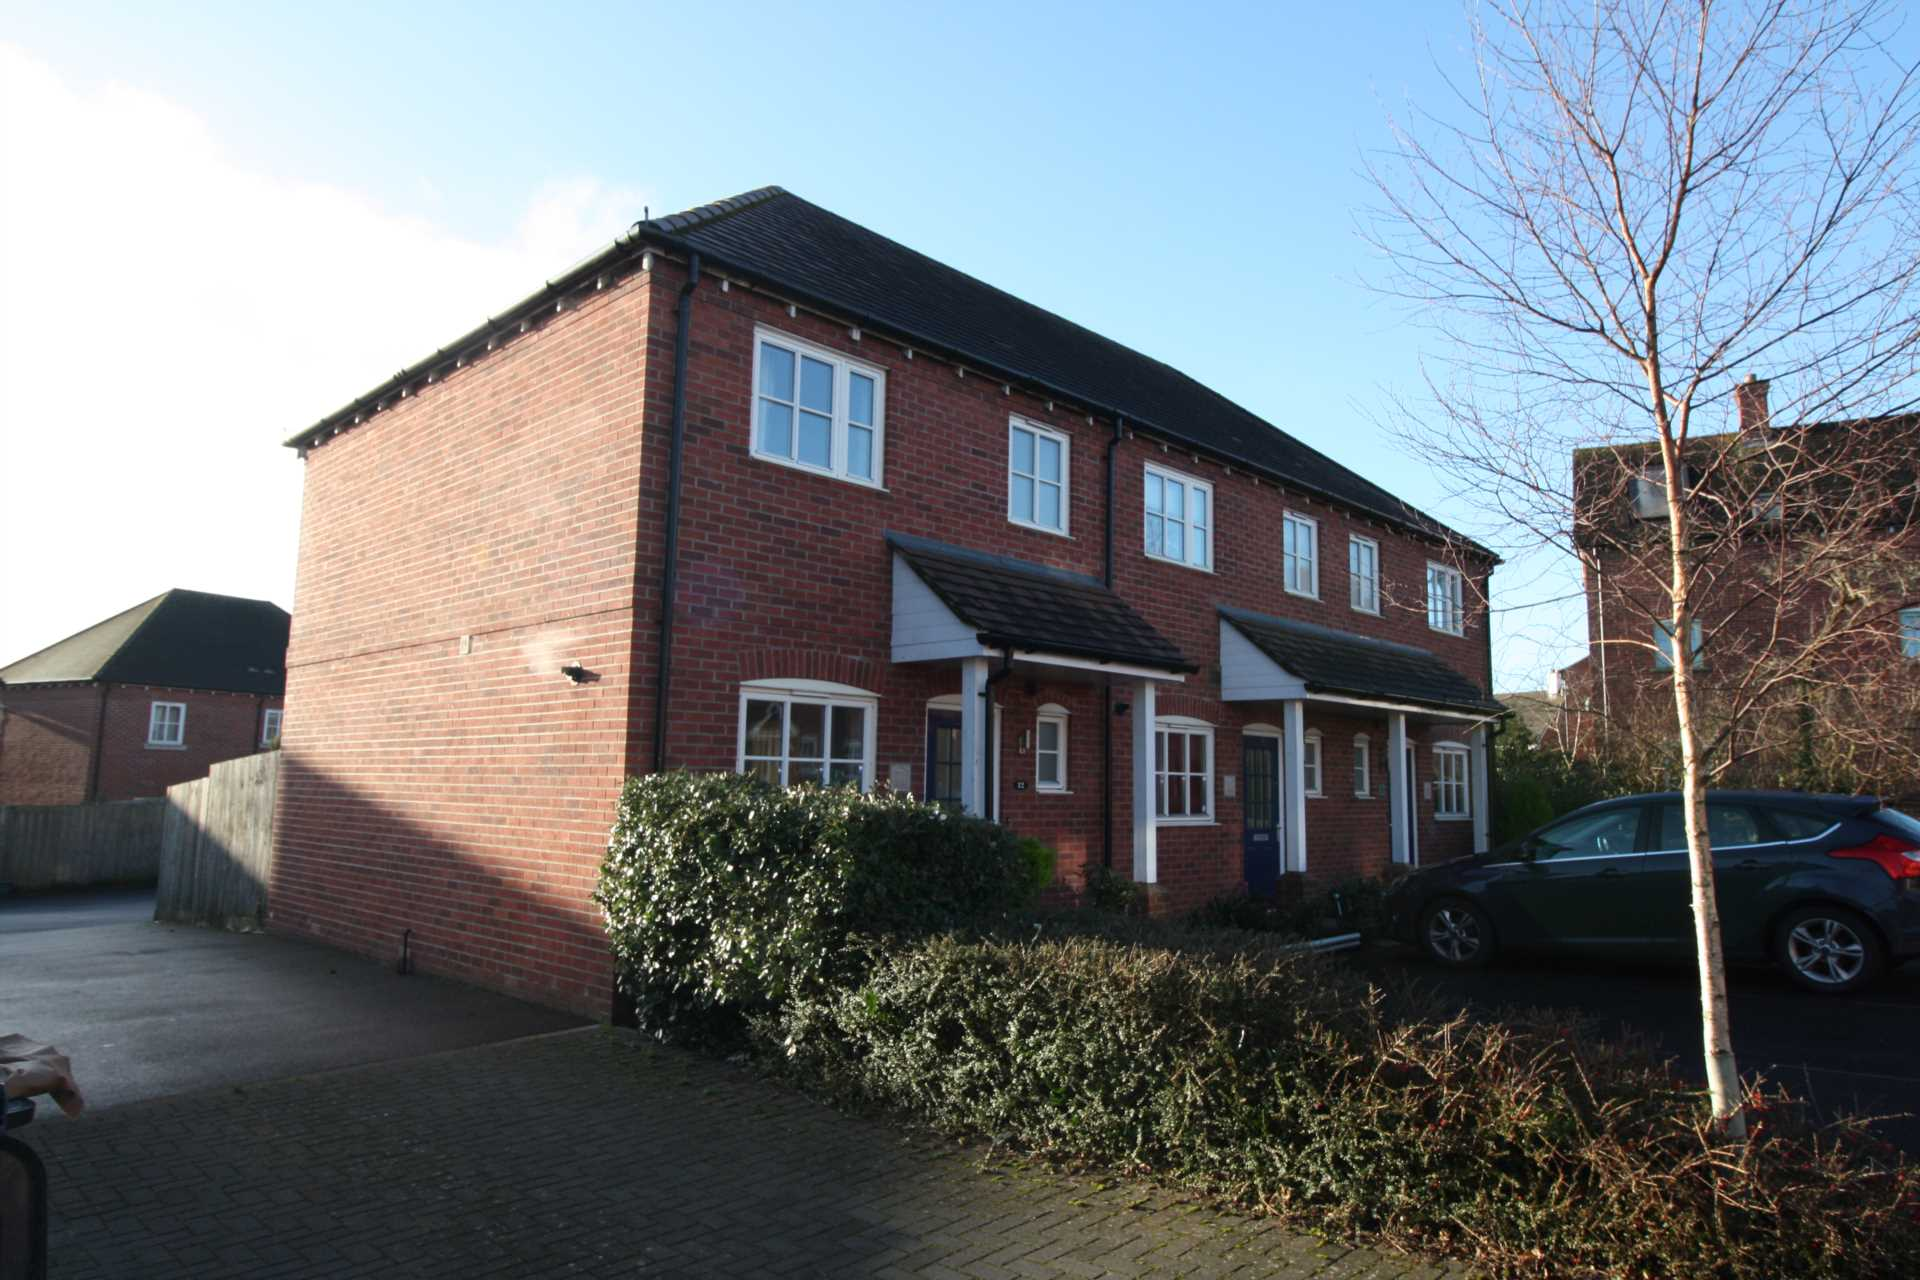 2 bed end of terrace house to rent in Greenacre Way, Shaftesbury, Shaftesbury  - Property Image 1